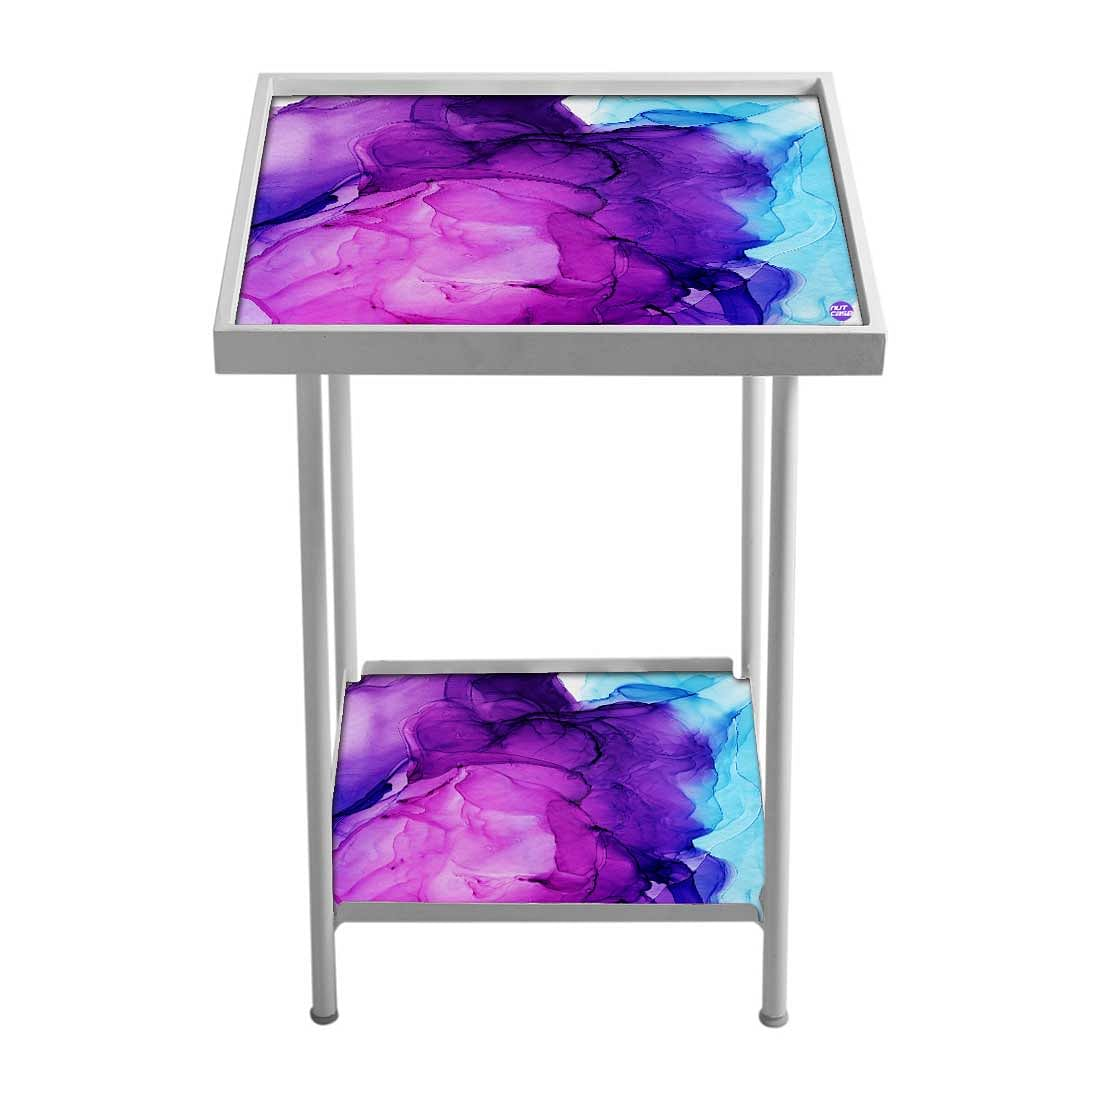 Metal SideTable for Bedroom